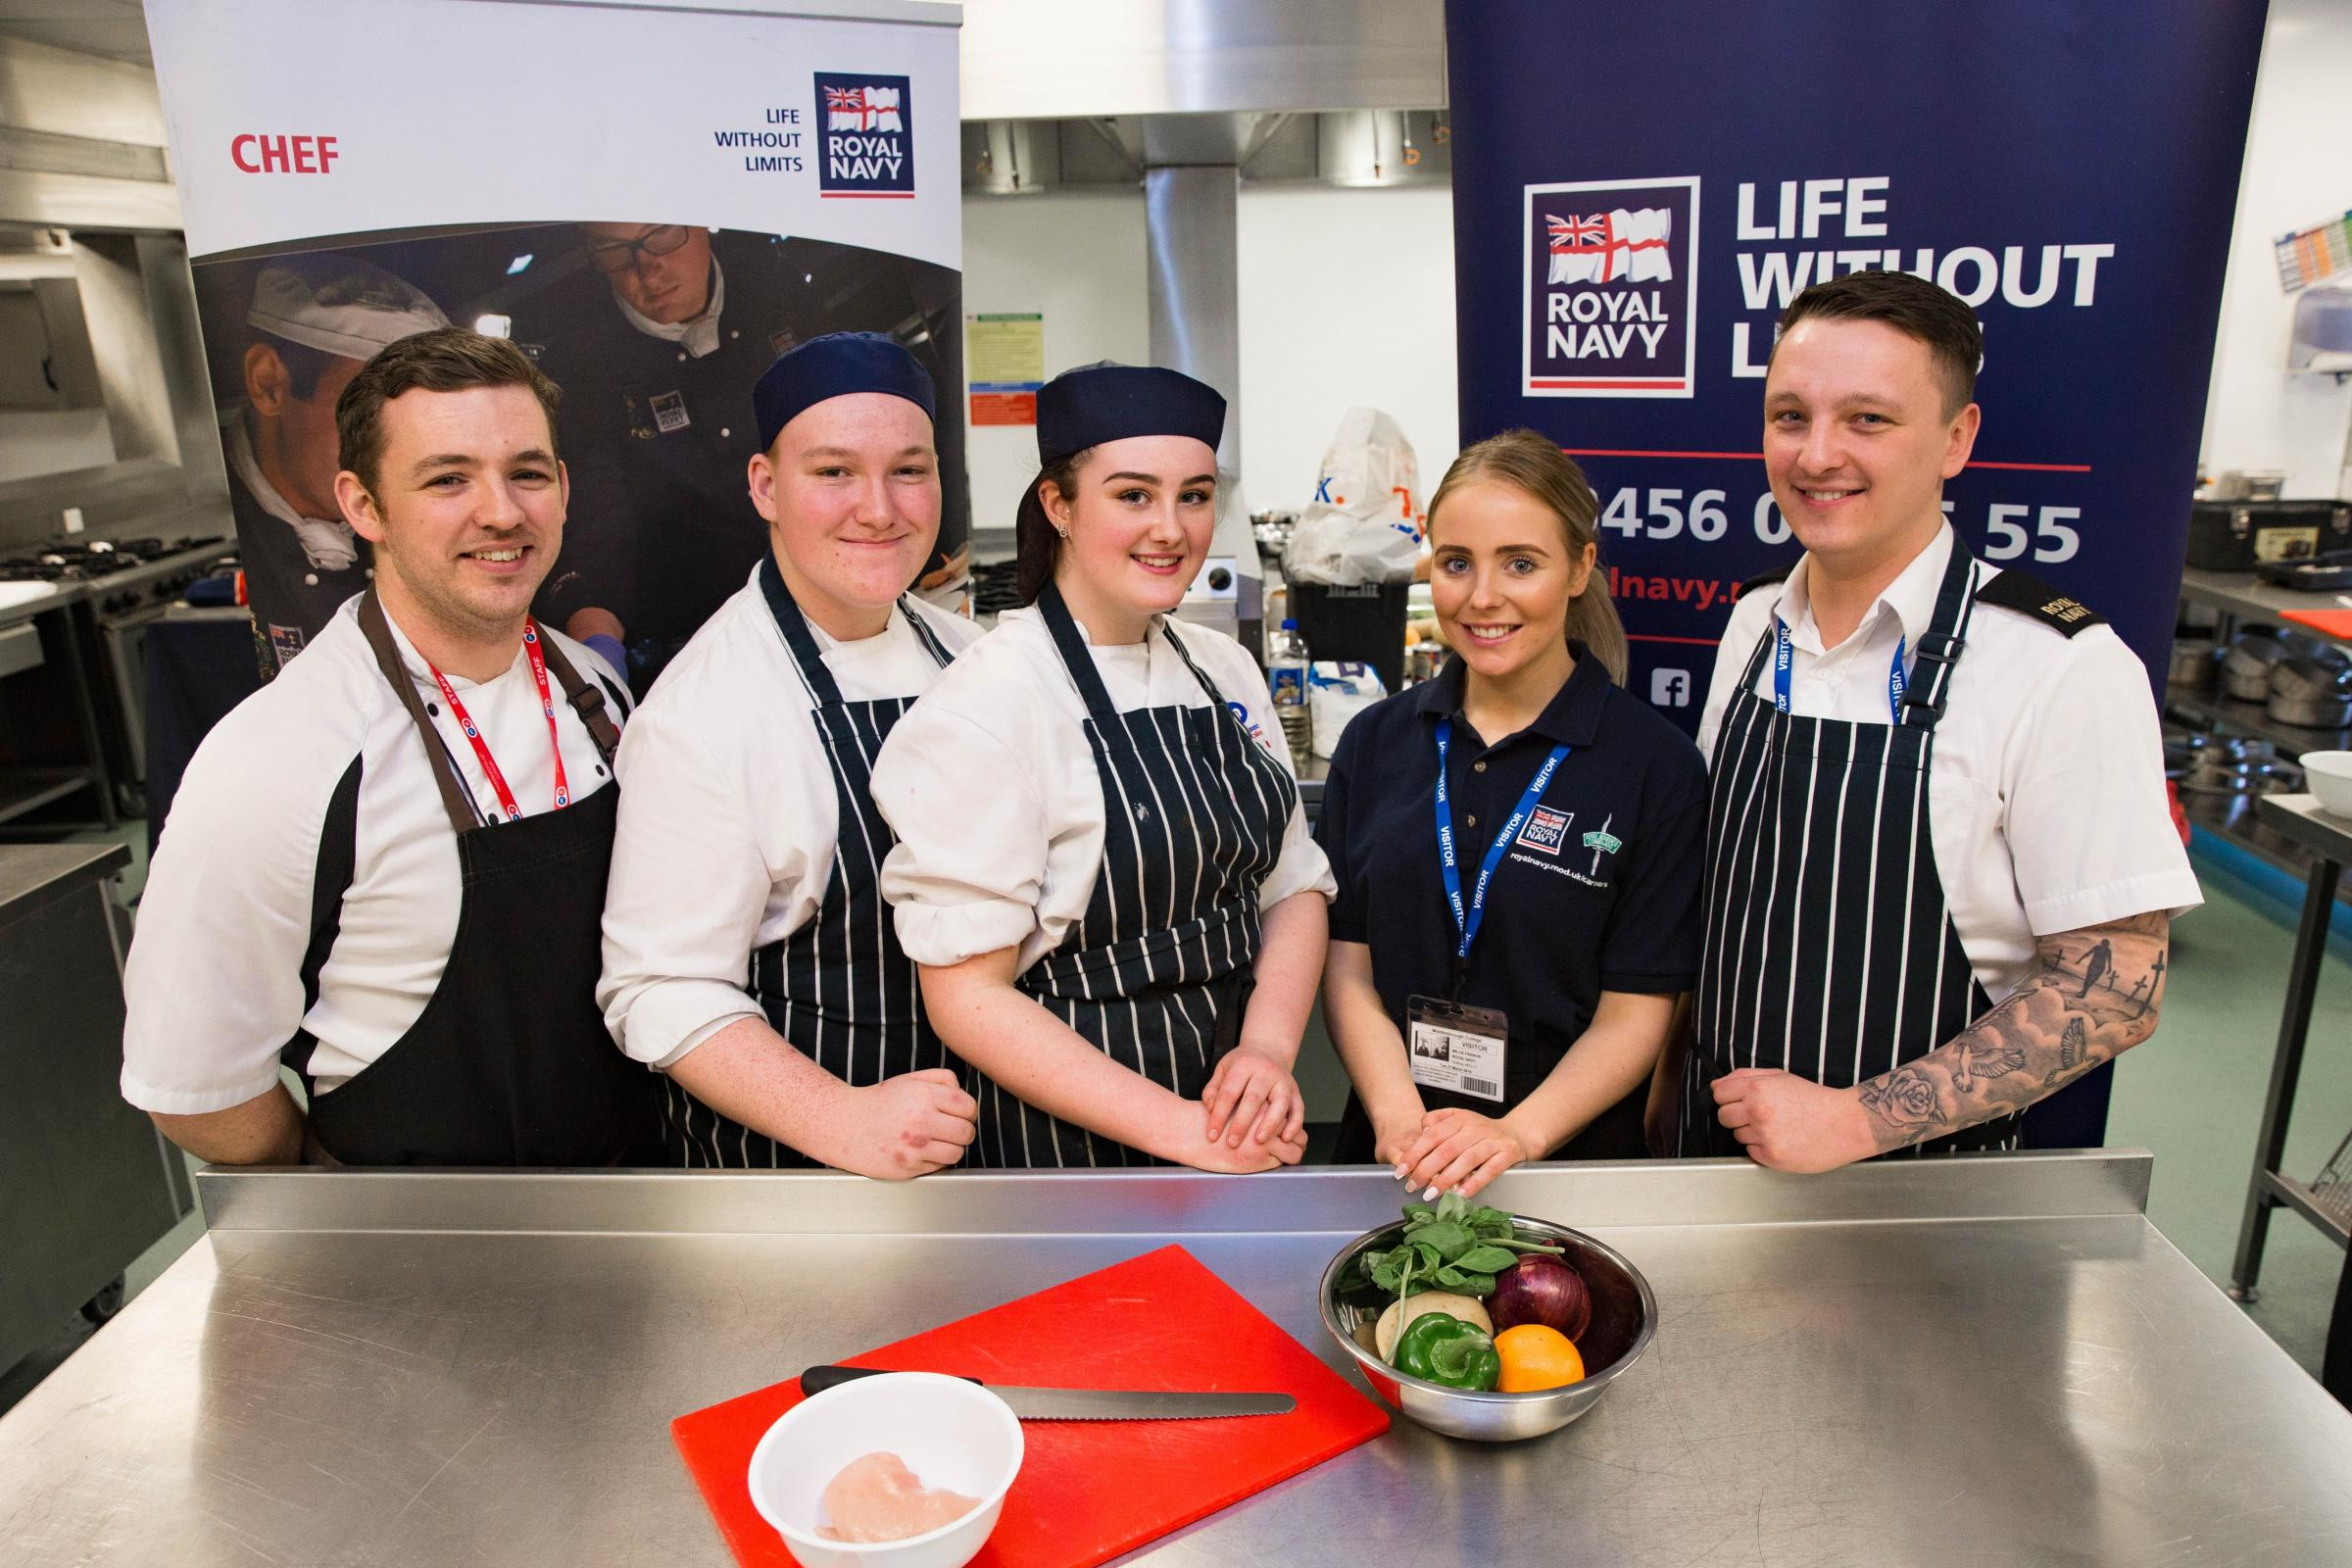 From left, catering lecturer Stephen Hardy, catering and hospitality students Sam Holmes and Brianne McTurk, Royal Navy Chef Millie Francis and Able Seaman Jack Thomson